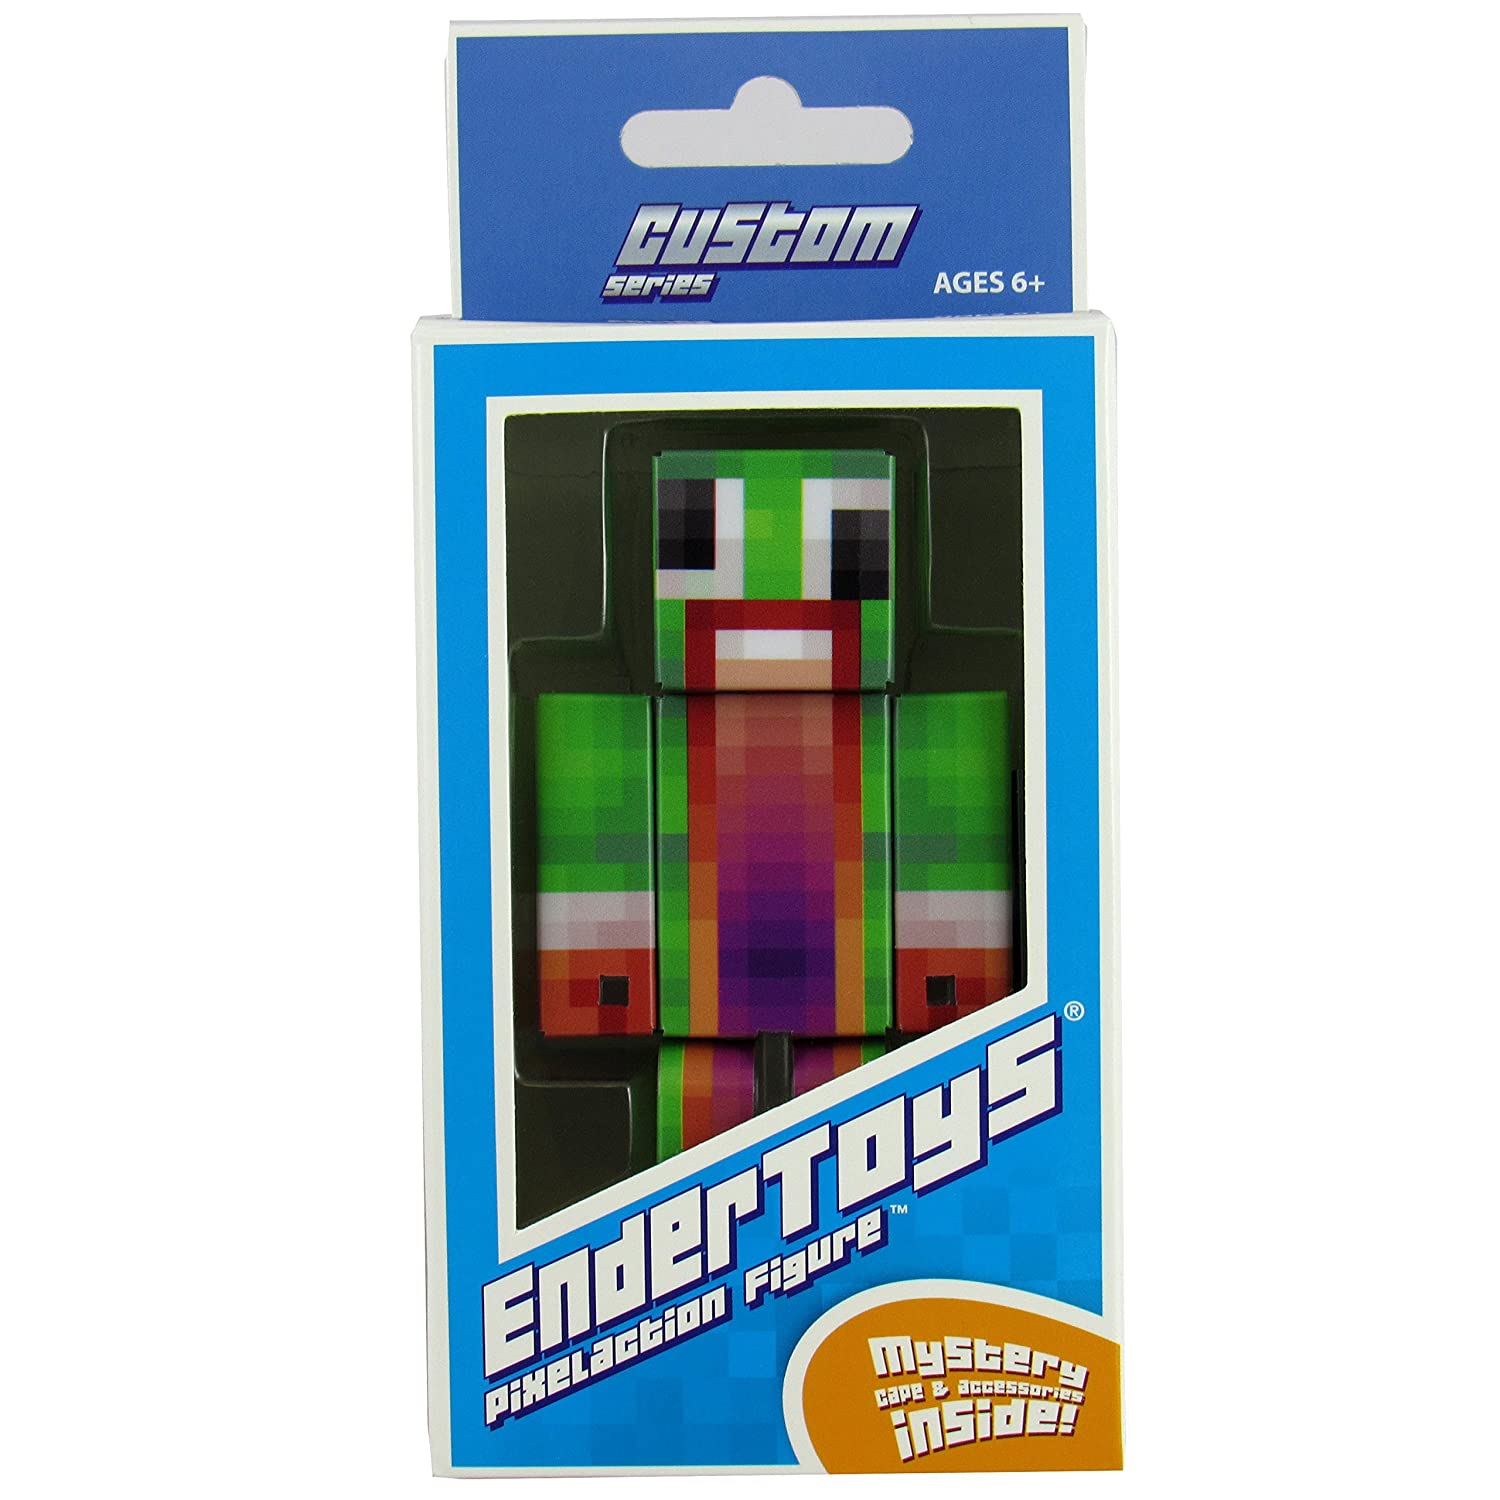 Not an Official Minecraft Product 4 Inch Custom Series Figurines Seus Corp Ltd. EnderToys Green Big Mouth Guy Action Figure Toy